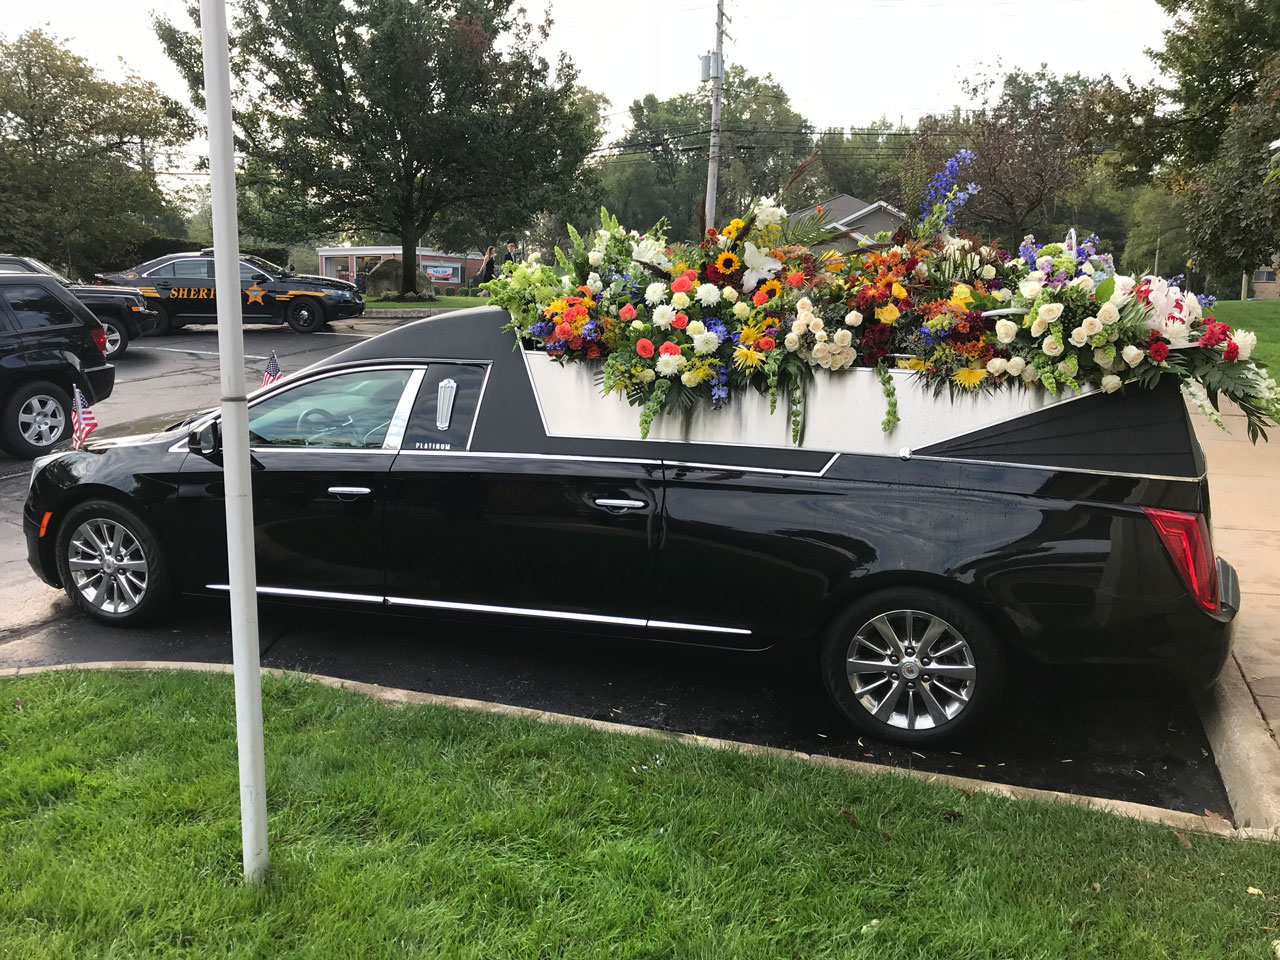 2019 Platinum Coach Cortege Flower Car 2